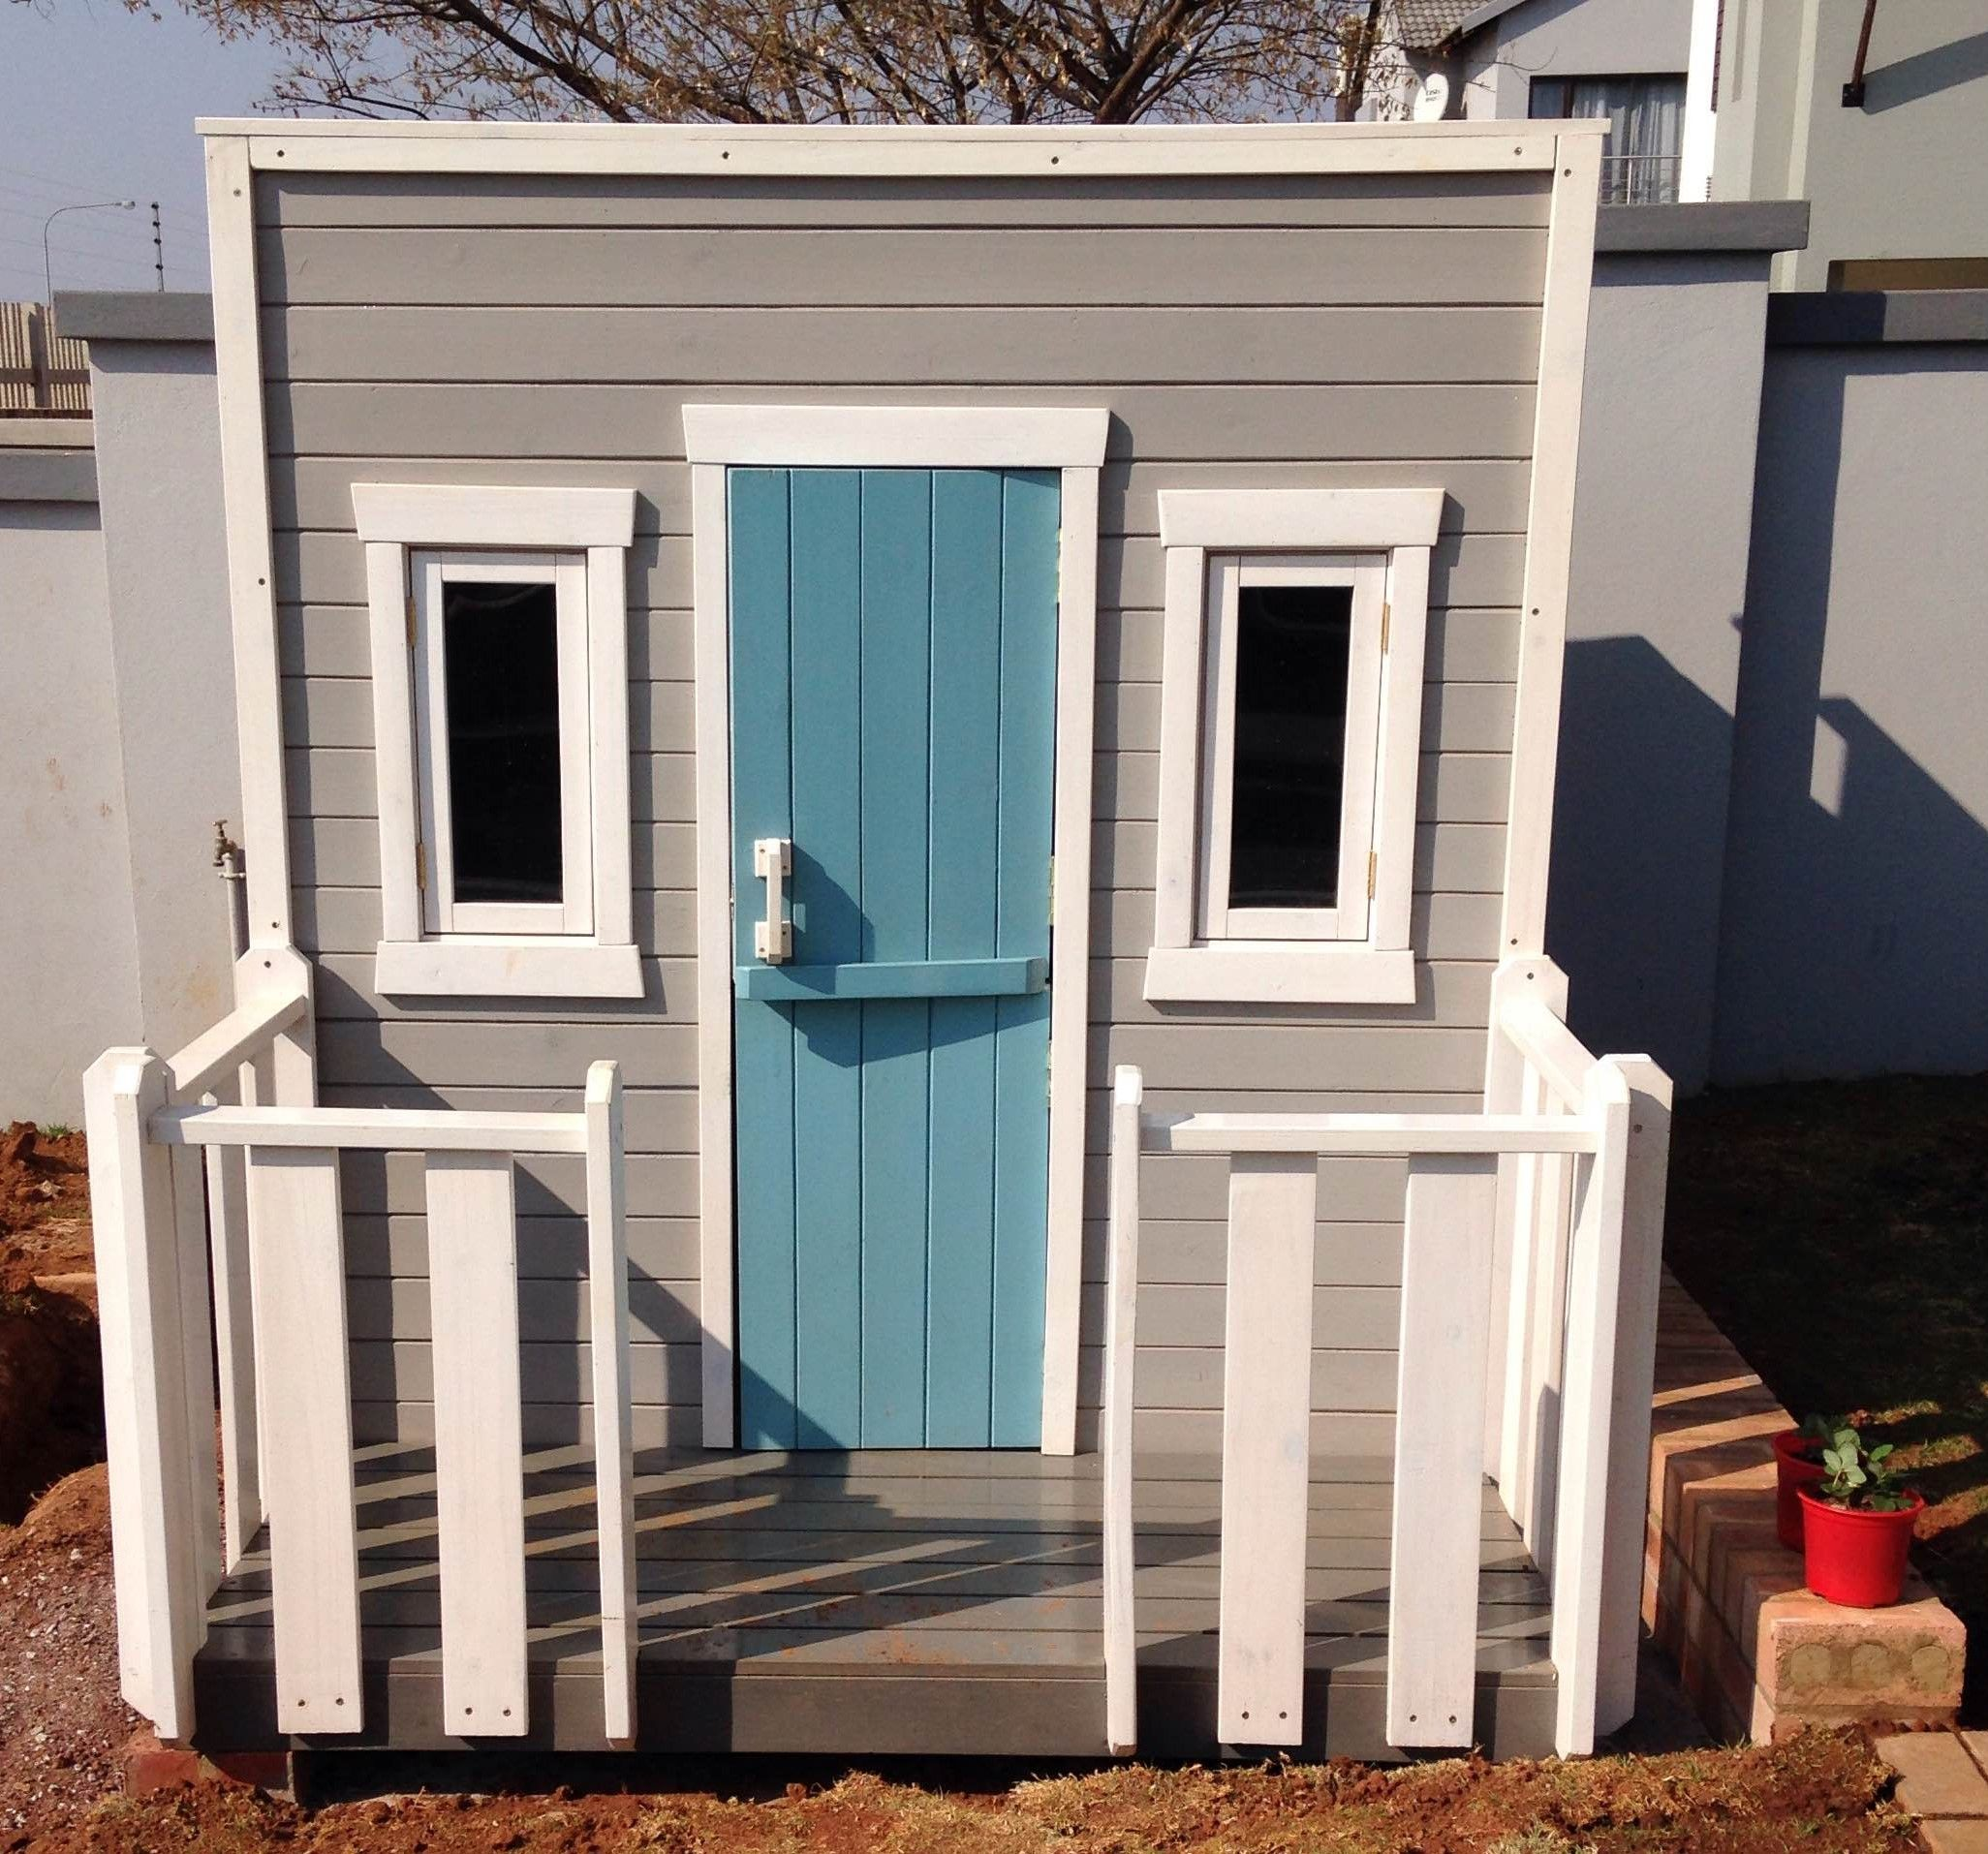 Playhouse With Slanted Roof And Stable Door